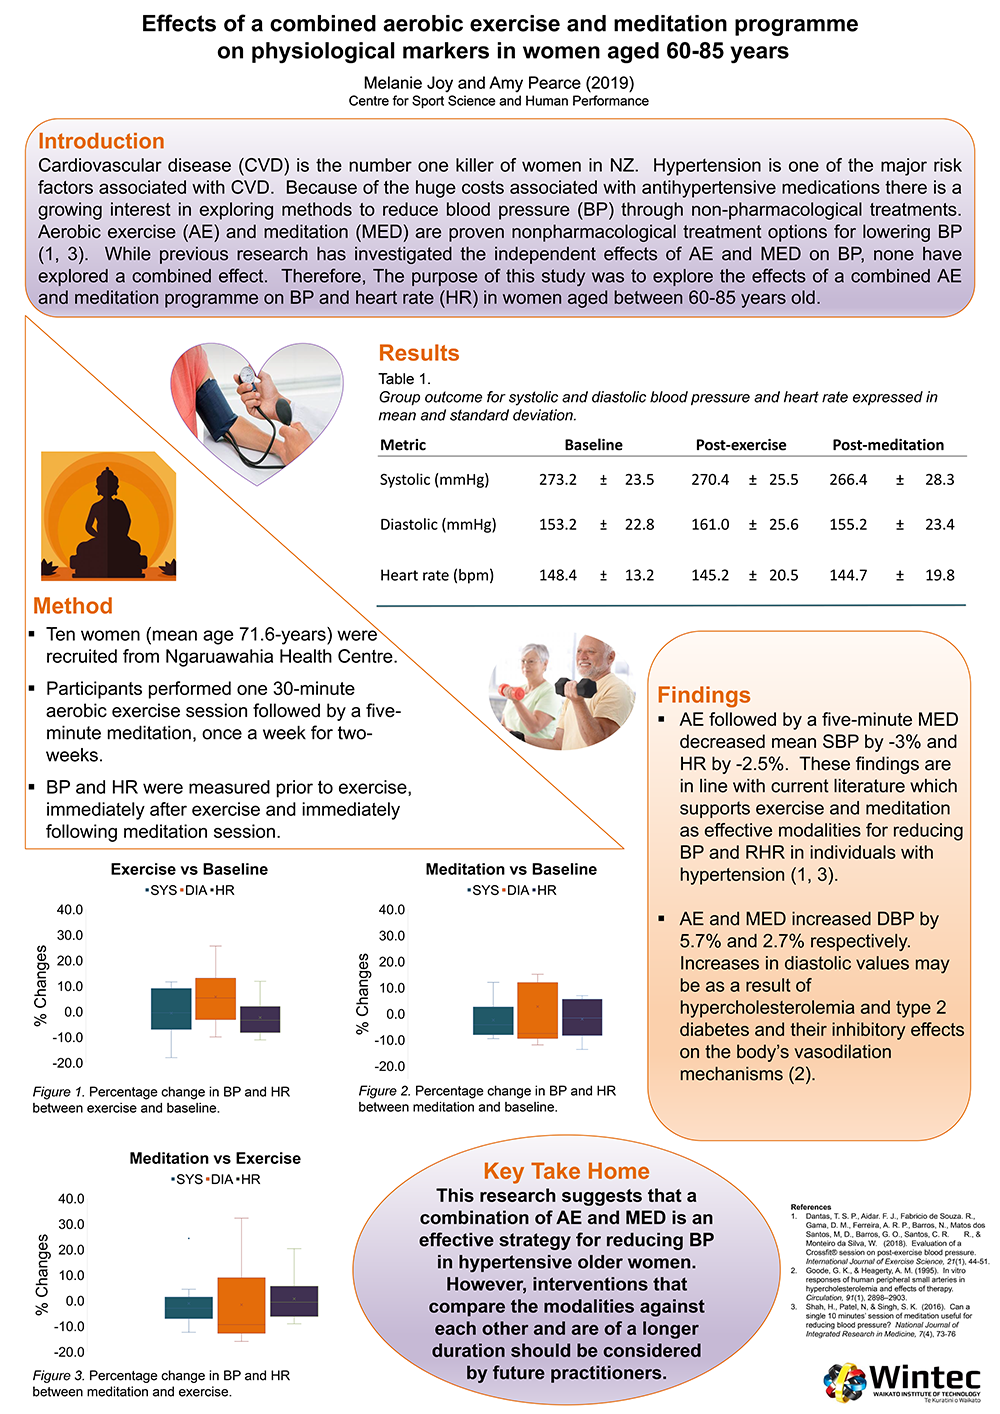 Effects of a combined aerobic exercise and meditation programme on physiological markers in women aged 60-85 year